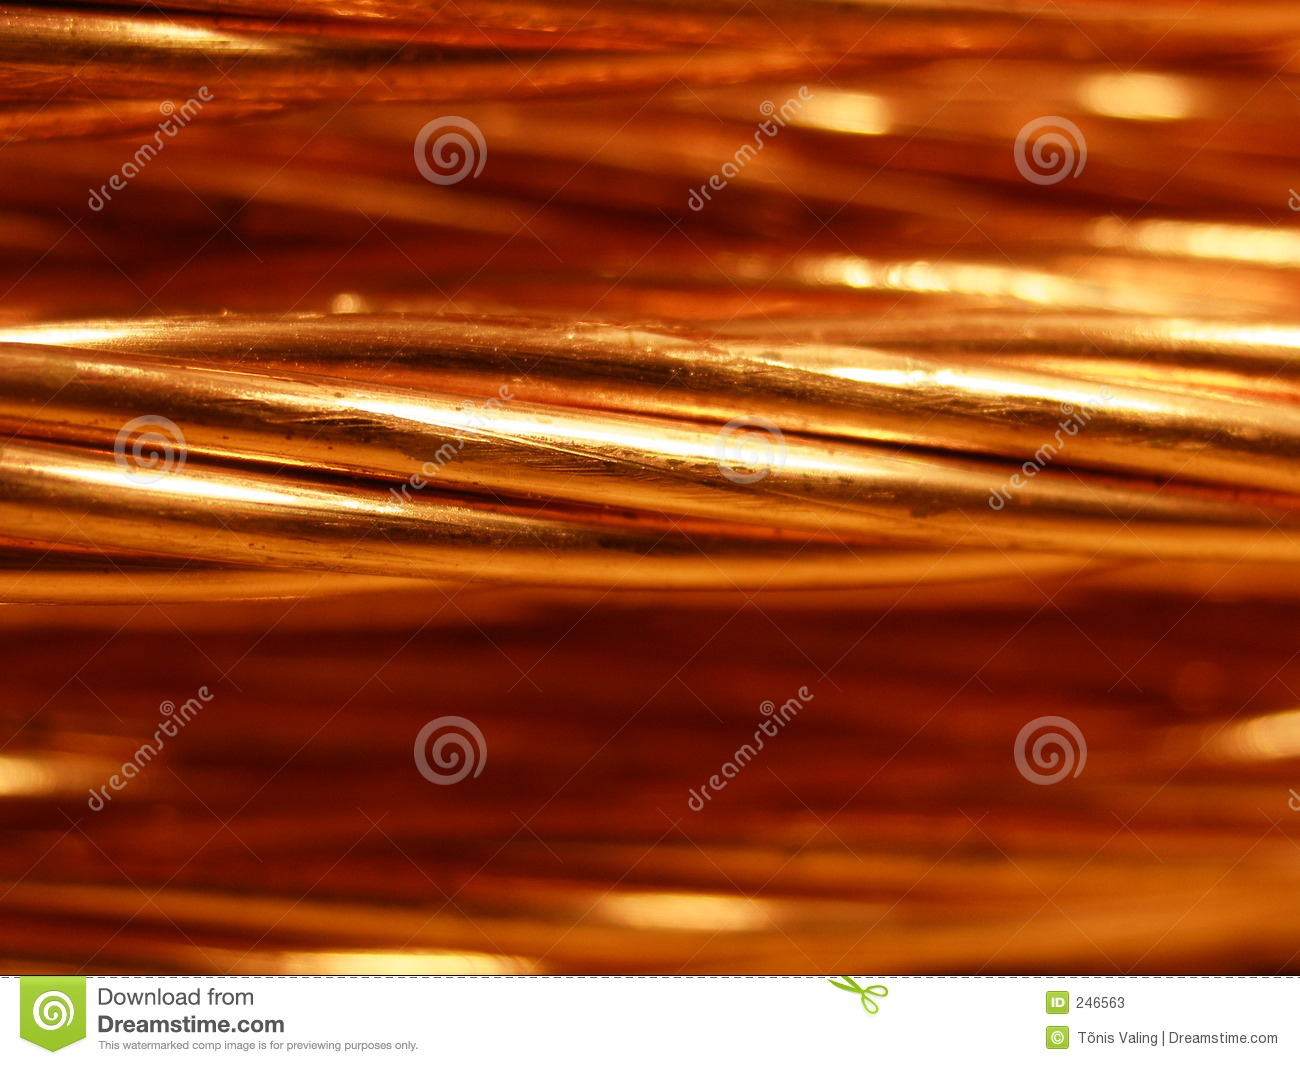 copper wires stock photos - photo #30